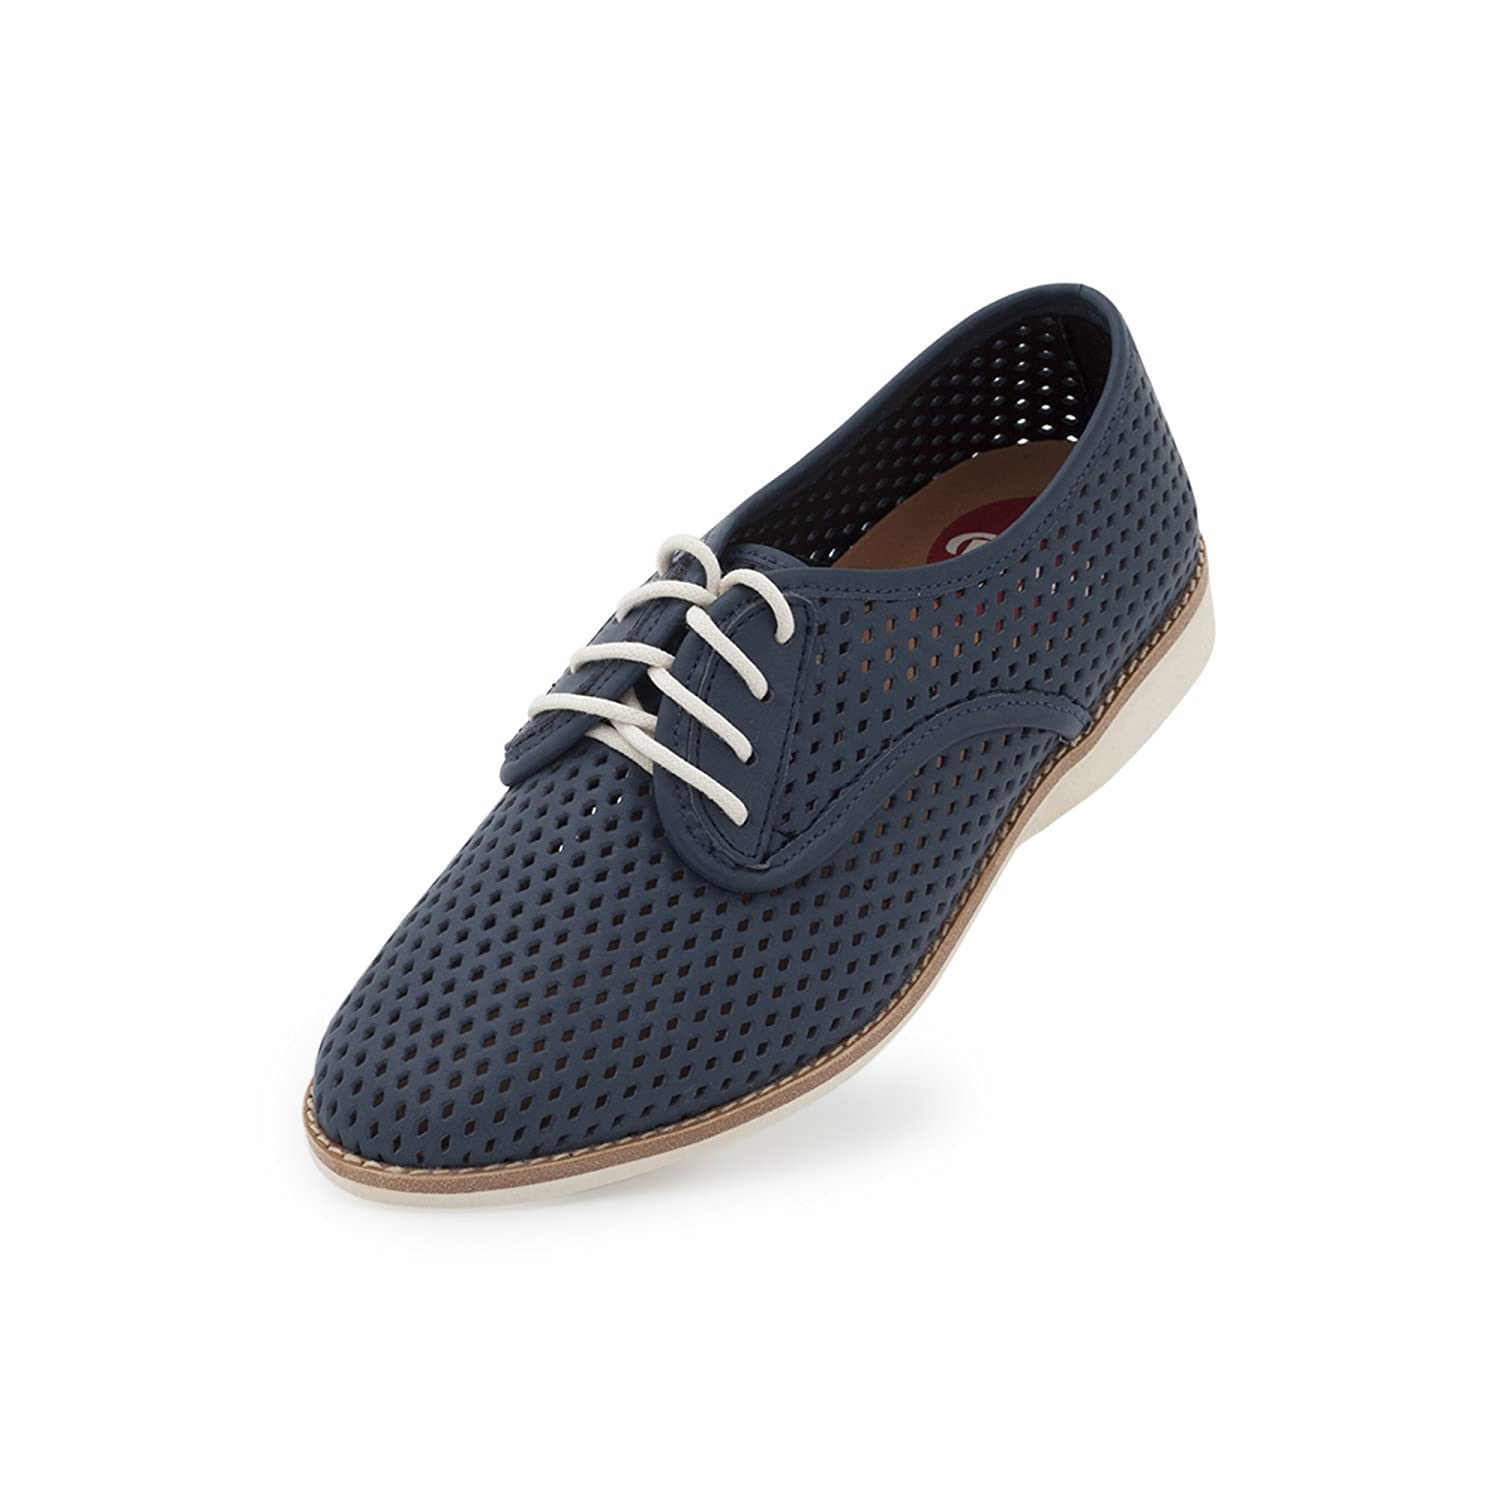 Rollie Women's Lightweight Derby Punch Perforated Lace-up Flat Shoe B07FKQG1MM 41 M EU|Dark Navy